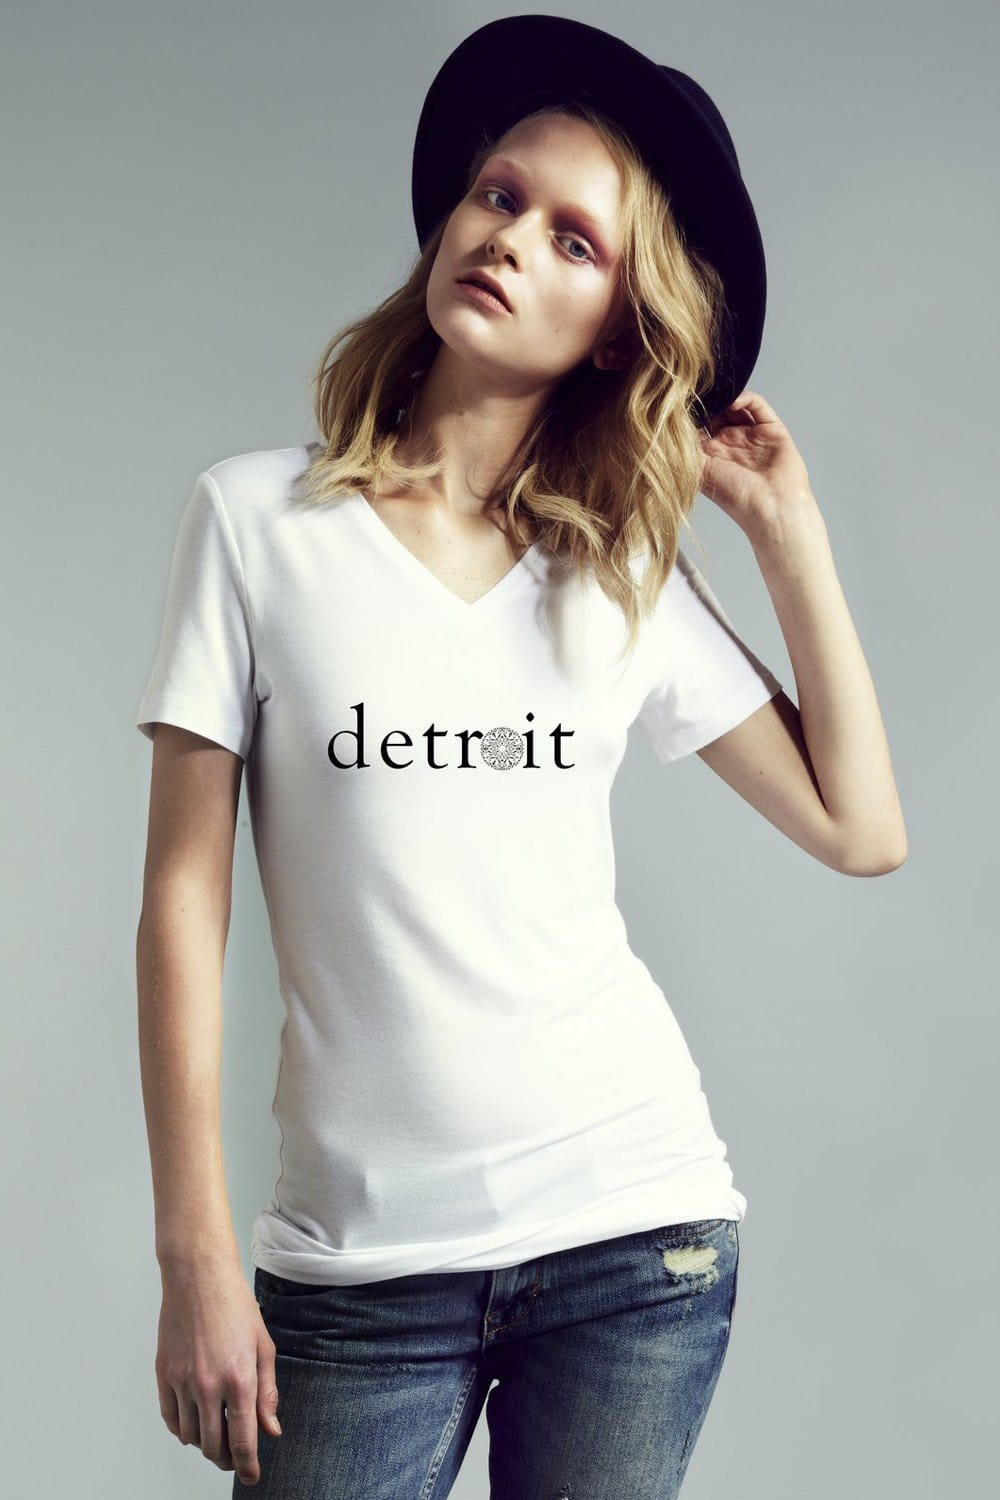 The Detroit Short Sleeve Fitted V-Neck - Himelhoch's